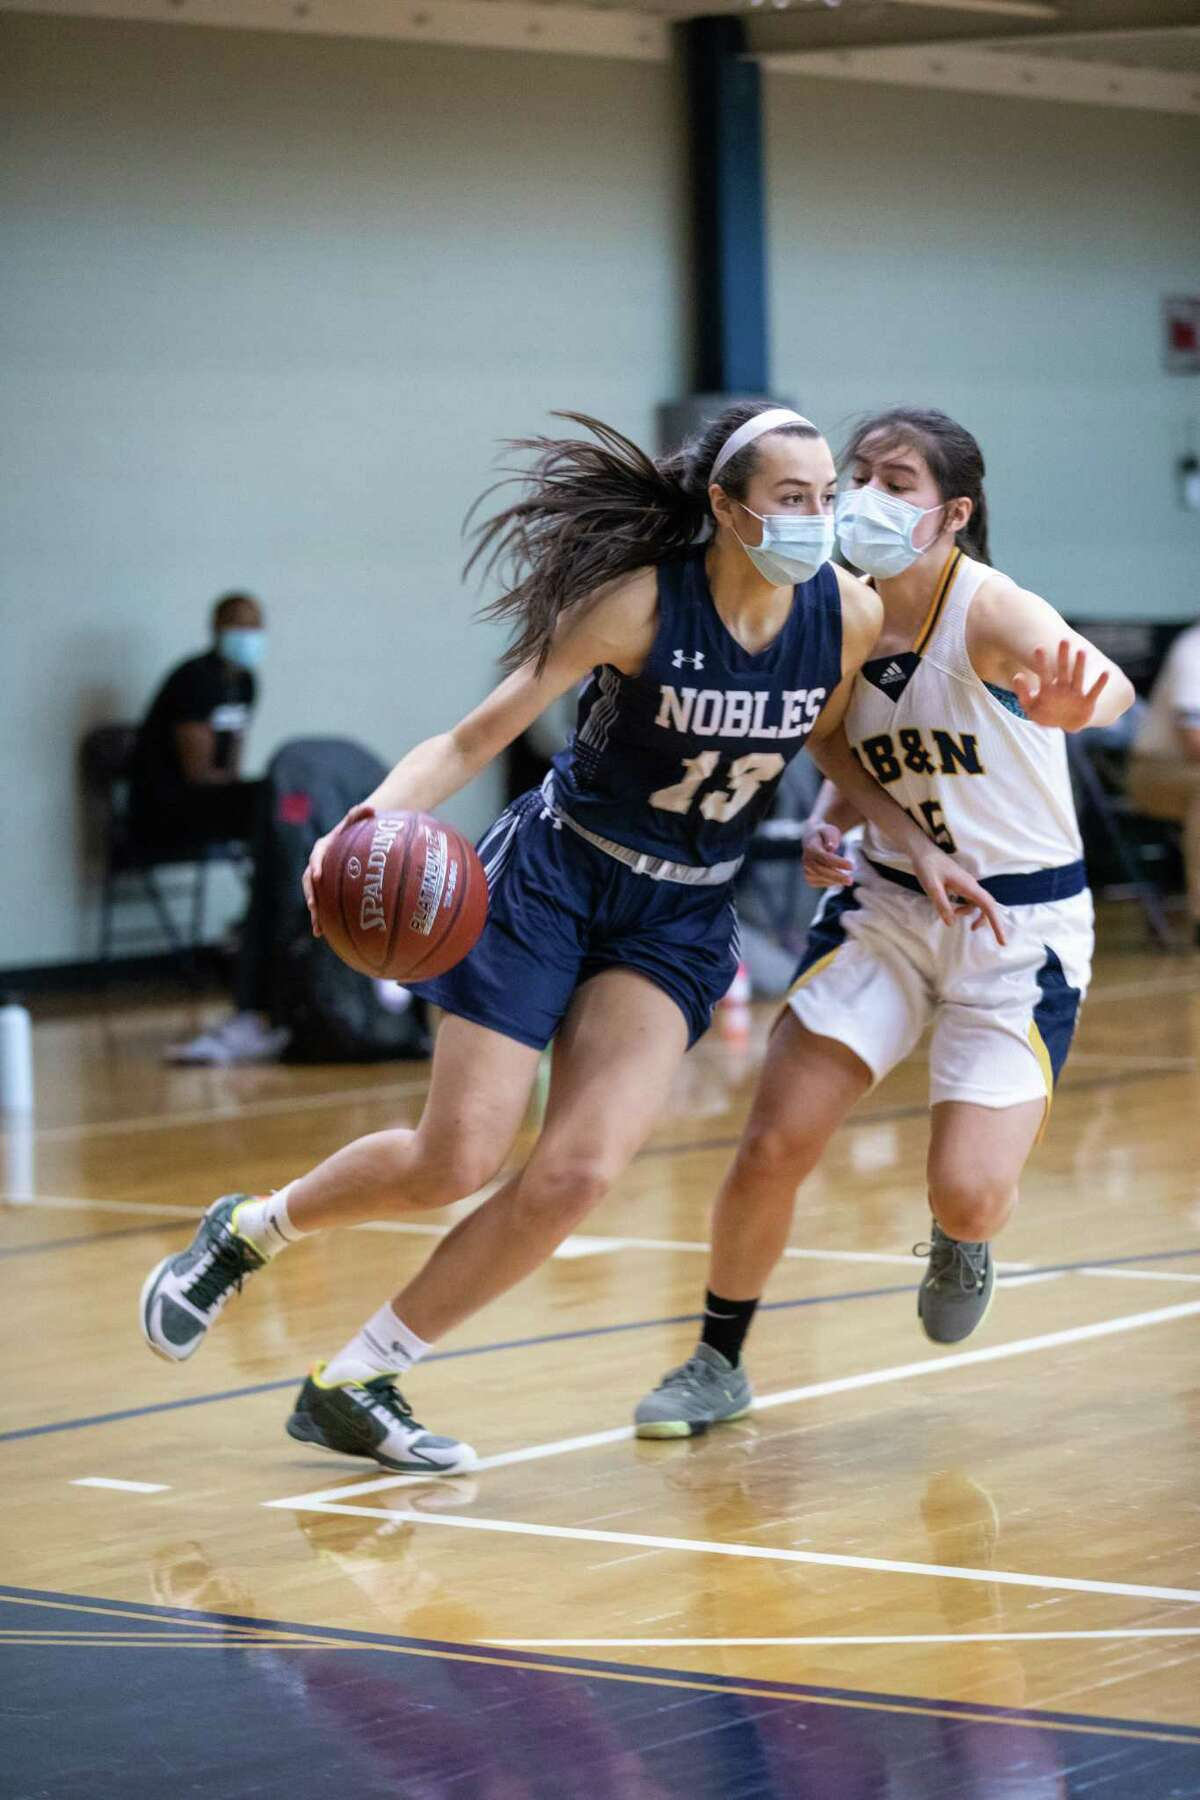 UConn recruit Caroline Ducharme, playing for Nobles and Greenough School.